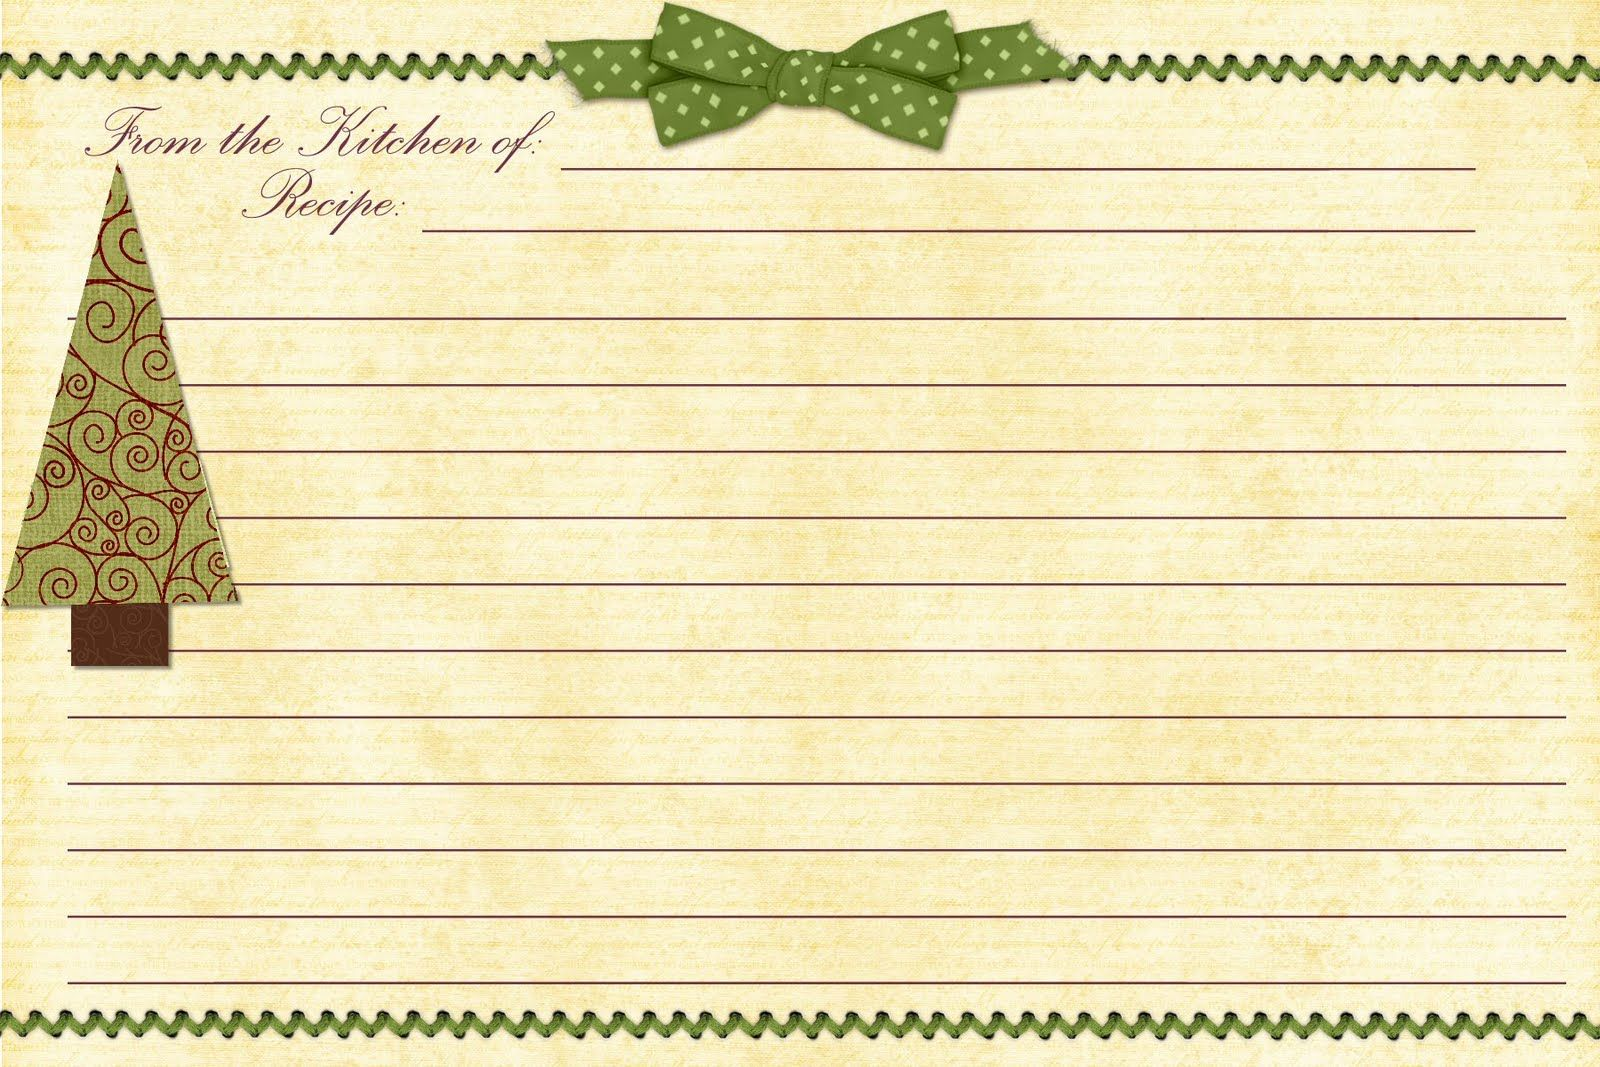 Cookie Exchange Recipe Card Recipe Cards Template Christmas Recipe Cards Holiday Recipe Card